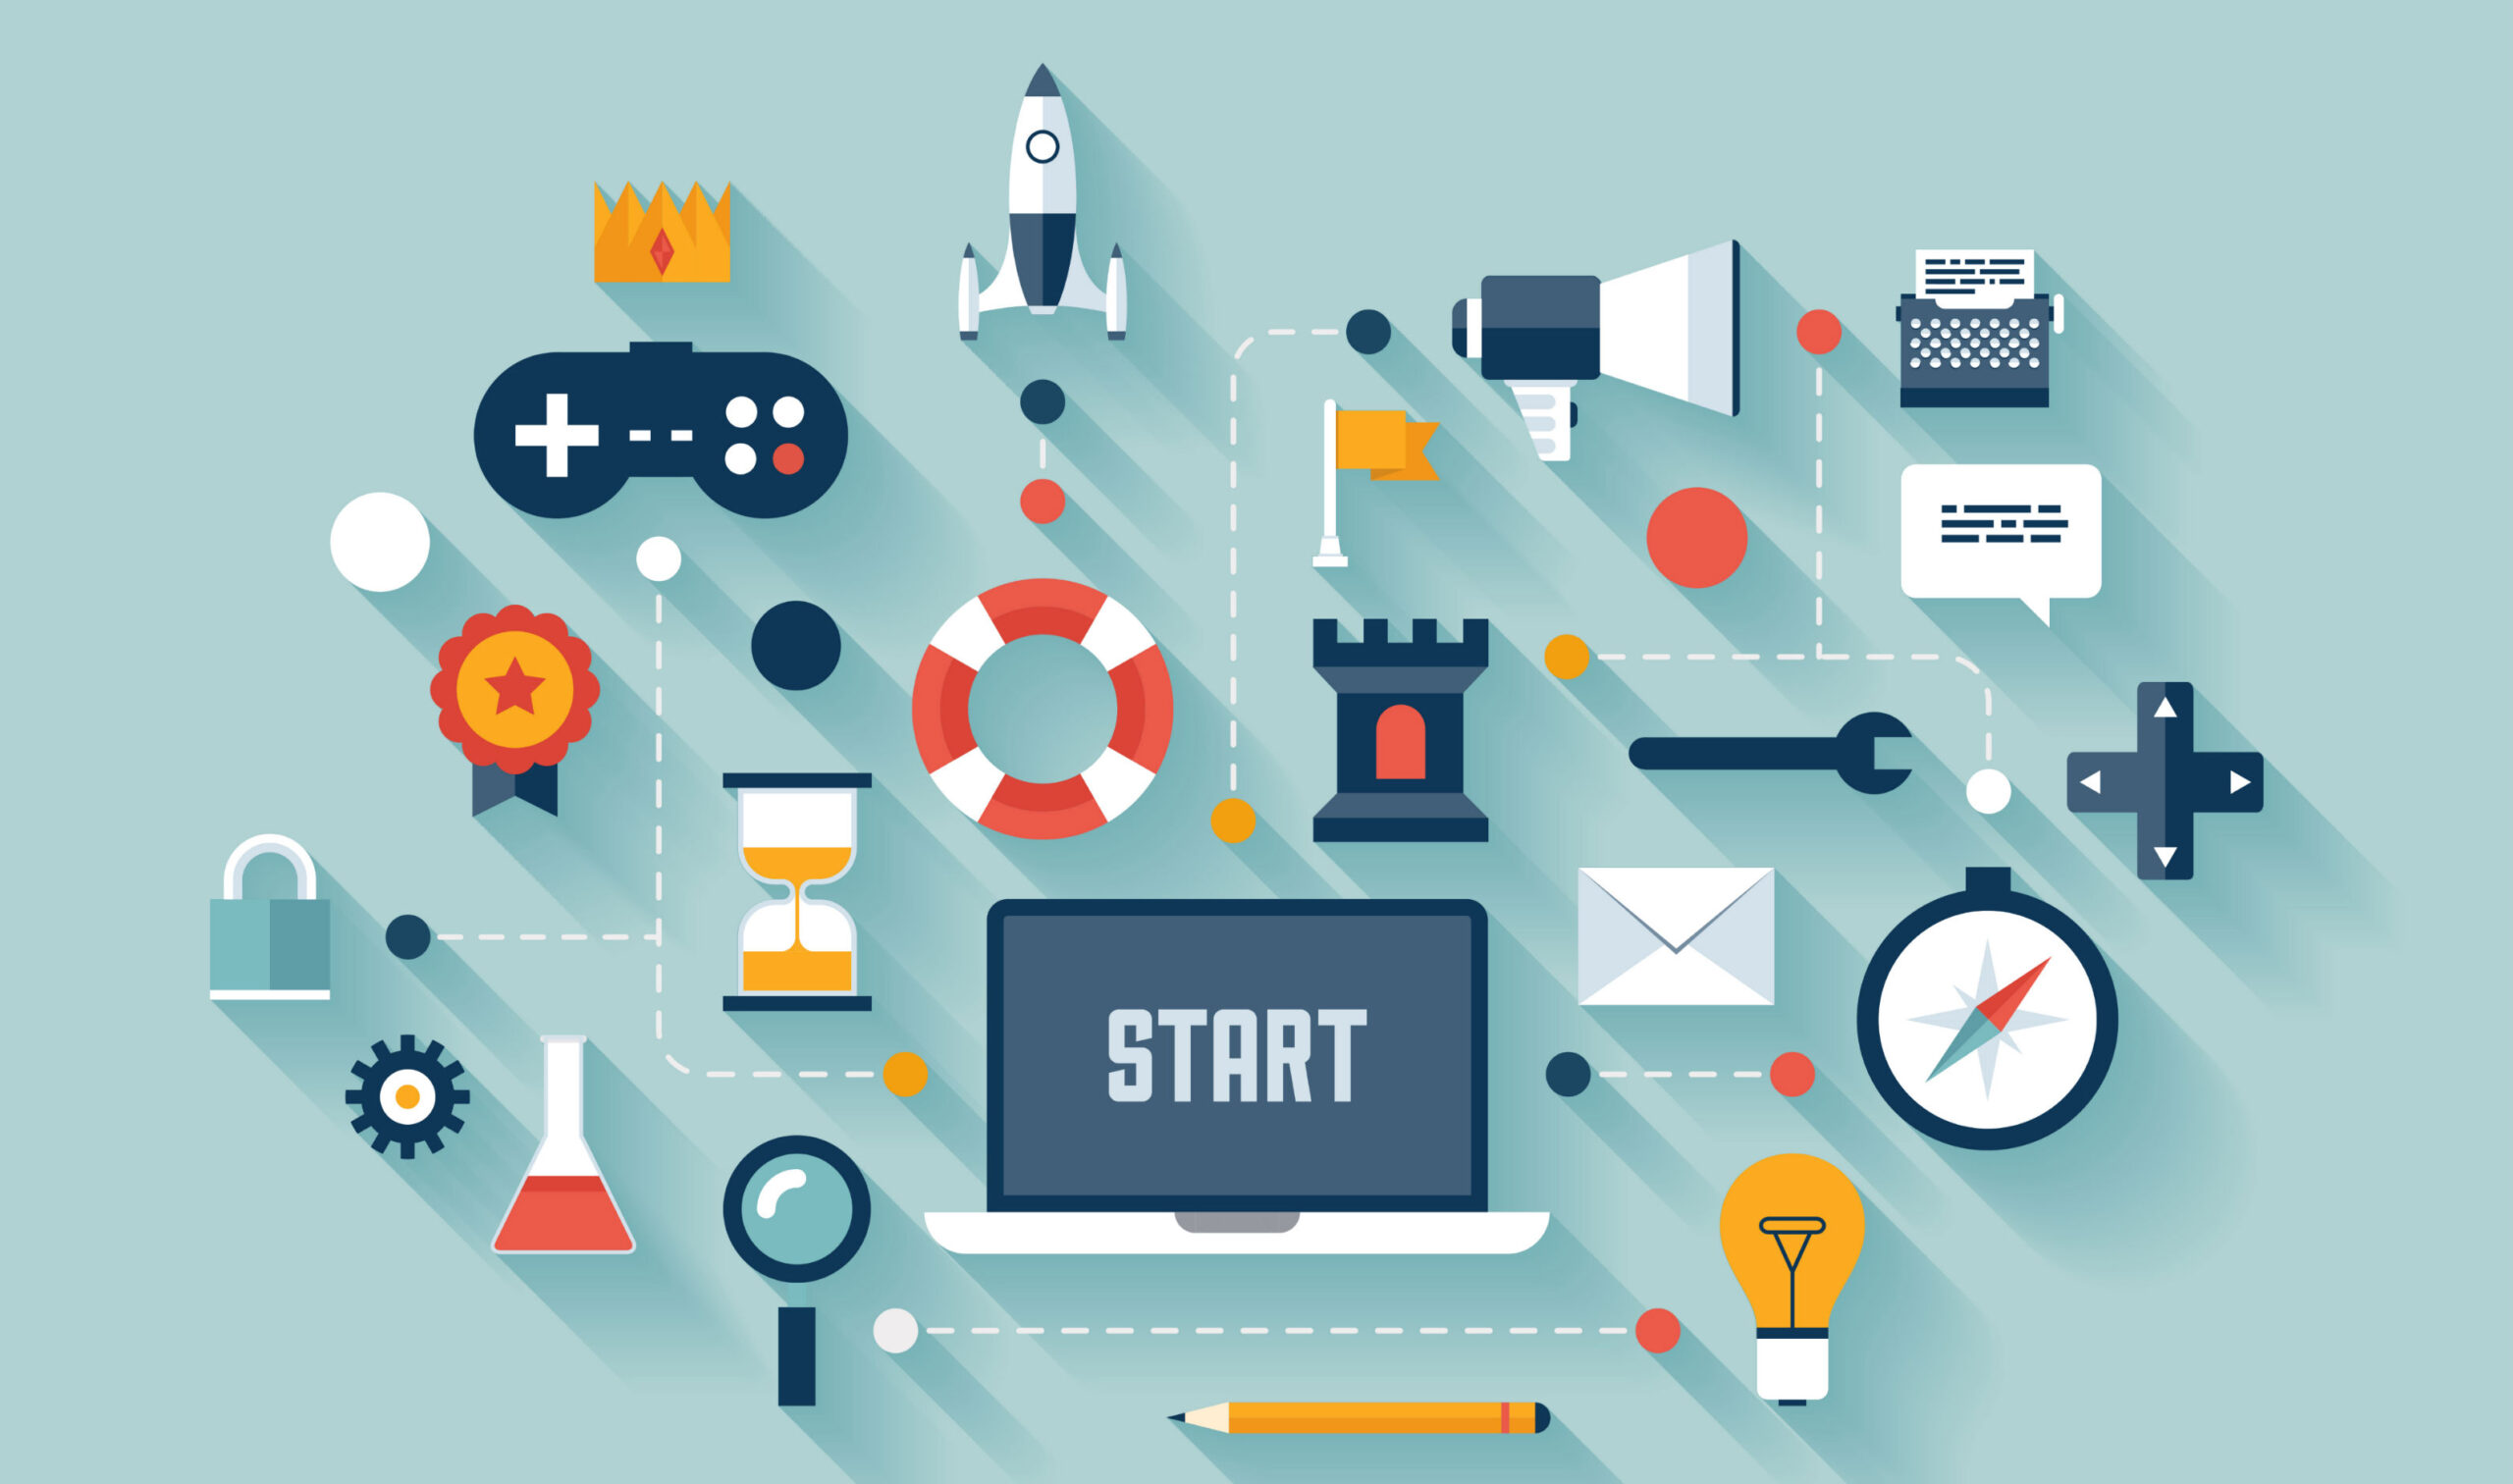 Gamification of the User Journey